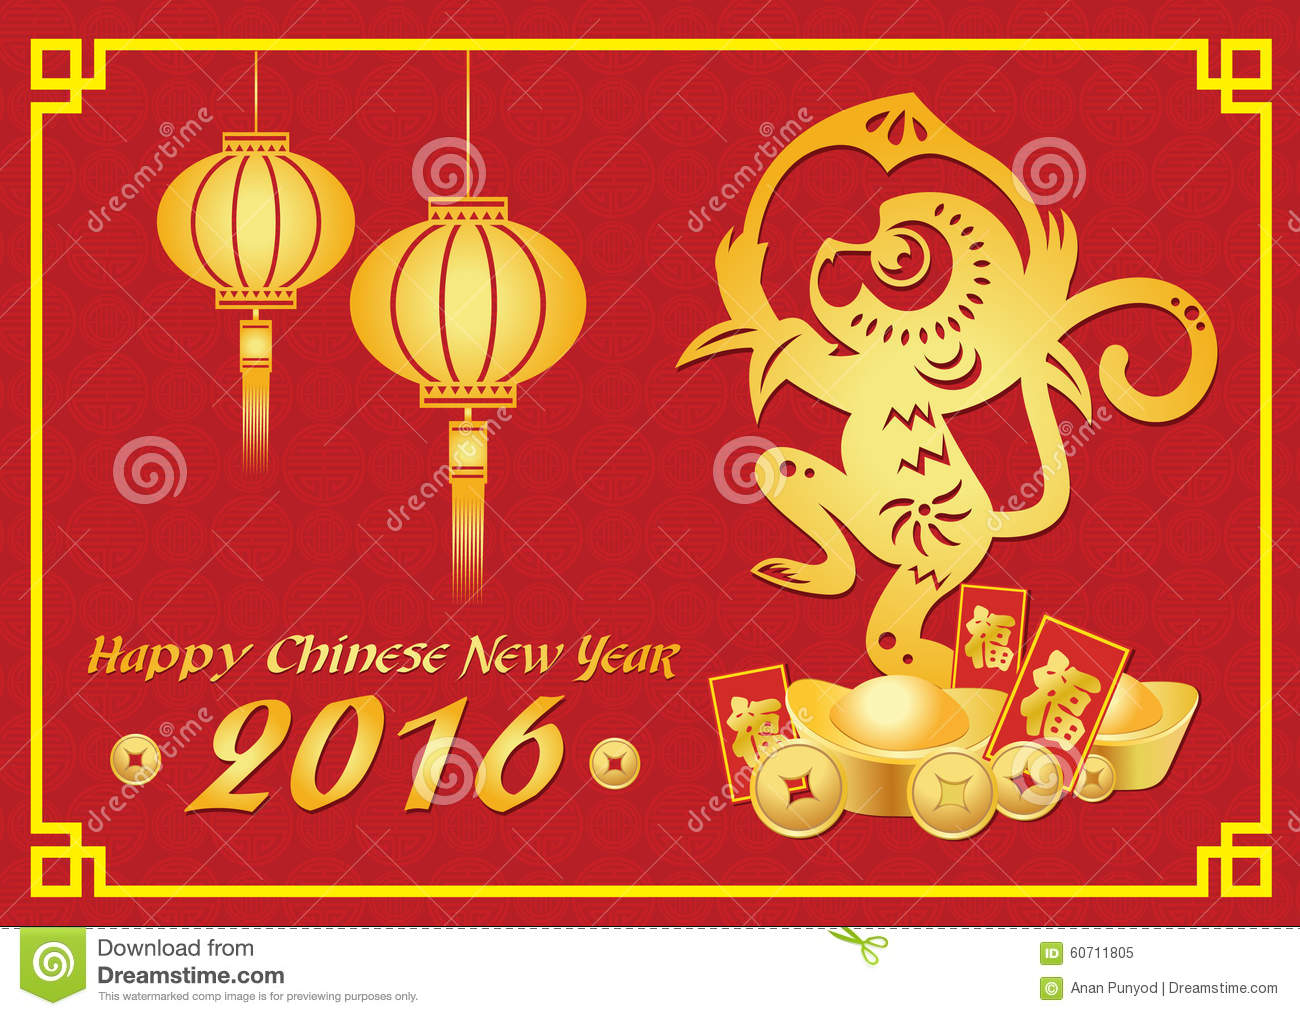 free chinese new year cards happy chinese new year 2016 - When Is Chinese New Year 2016